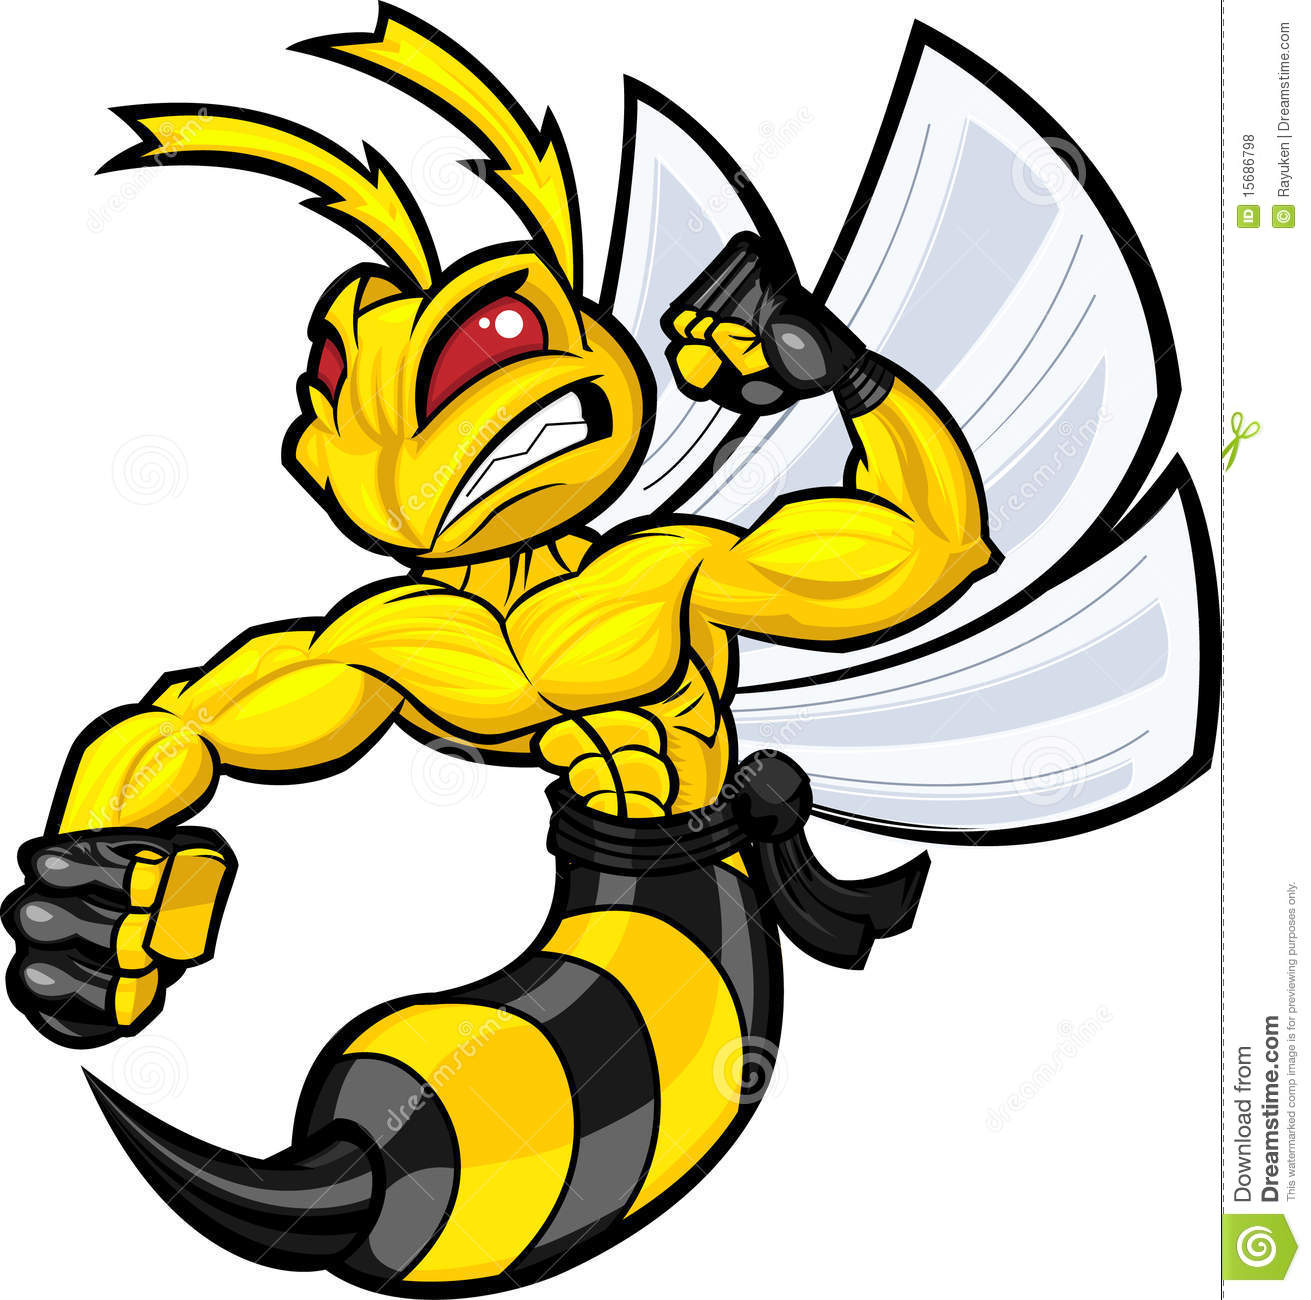 fighting hornet royalty free stock photos image 15686798 lizard clipart black and white lizard clip art image